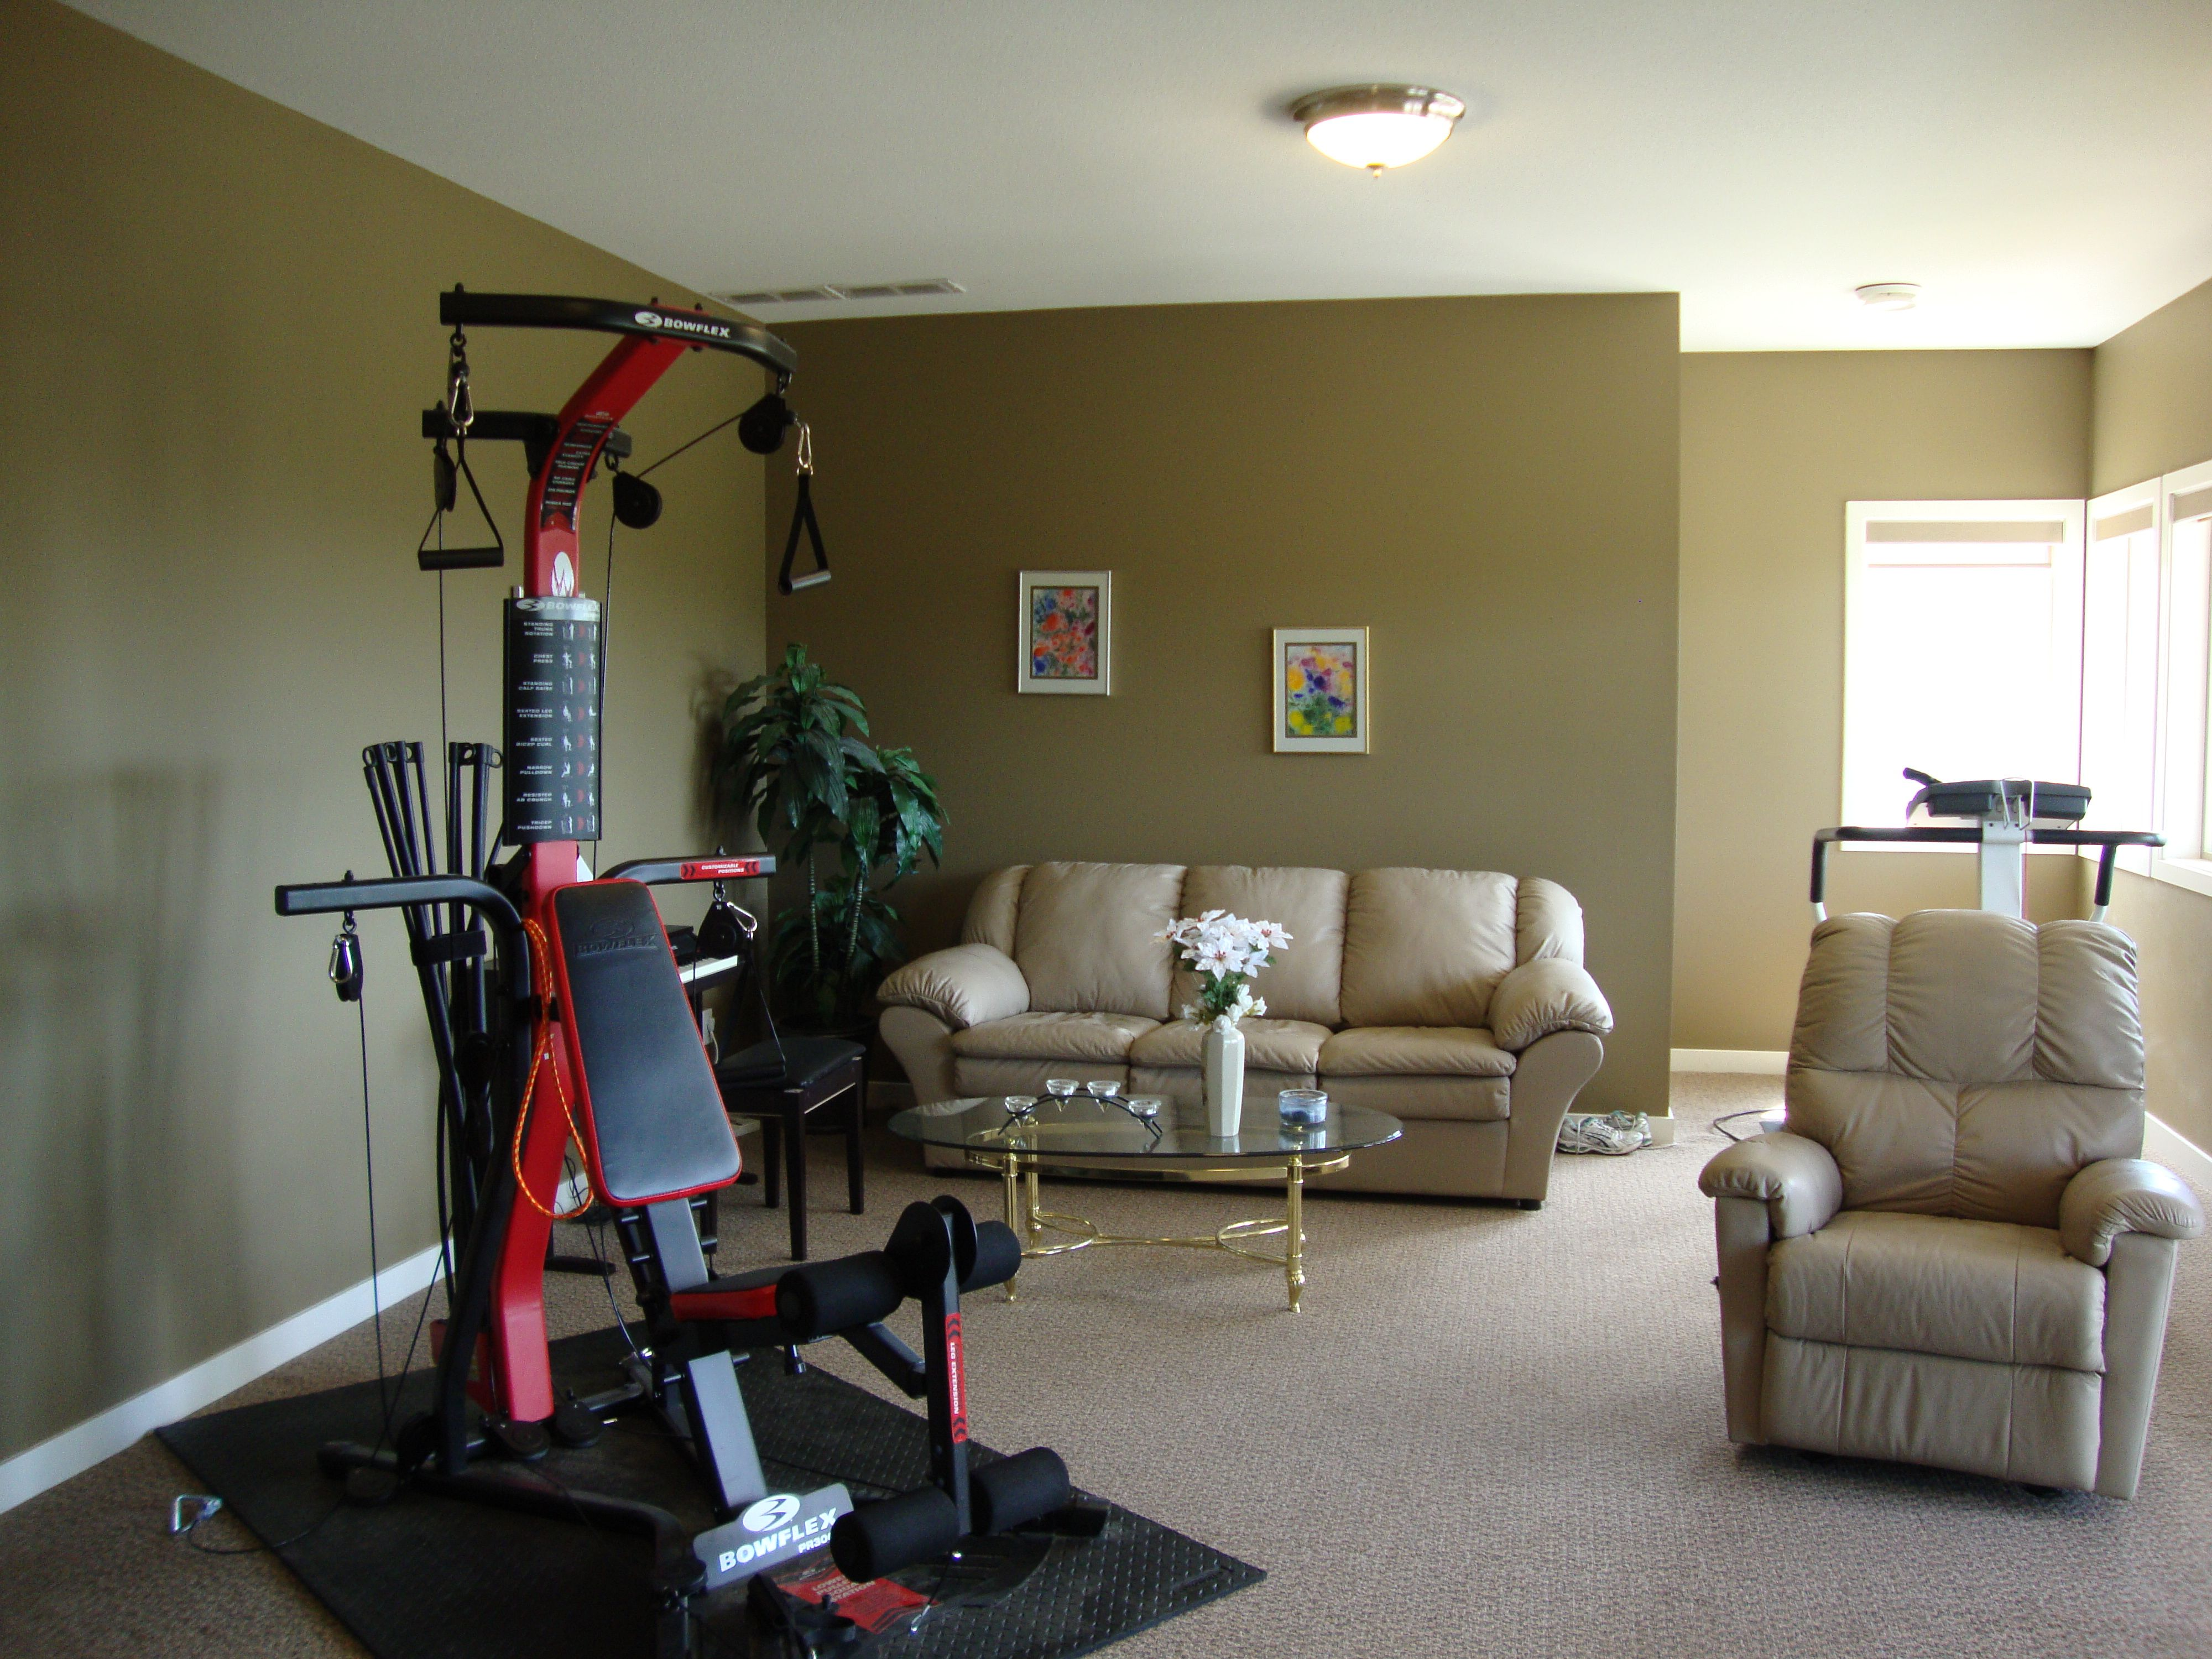 Golfandlakeviewbedandbreakfast Wp Content Uploads 2013 07 Optional Gym Equipment In Living Room Area